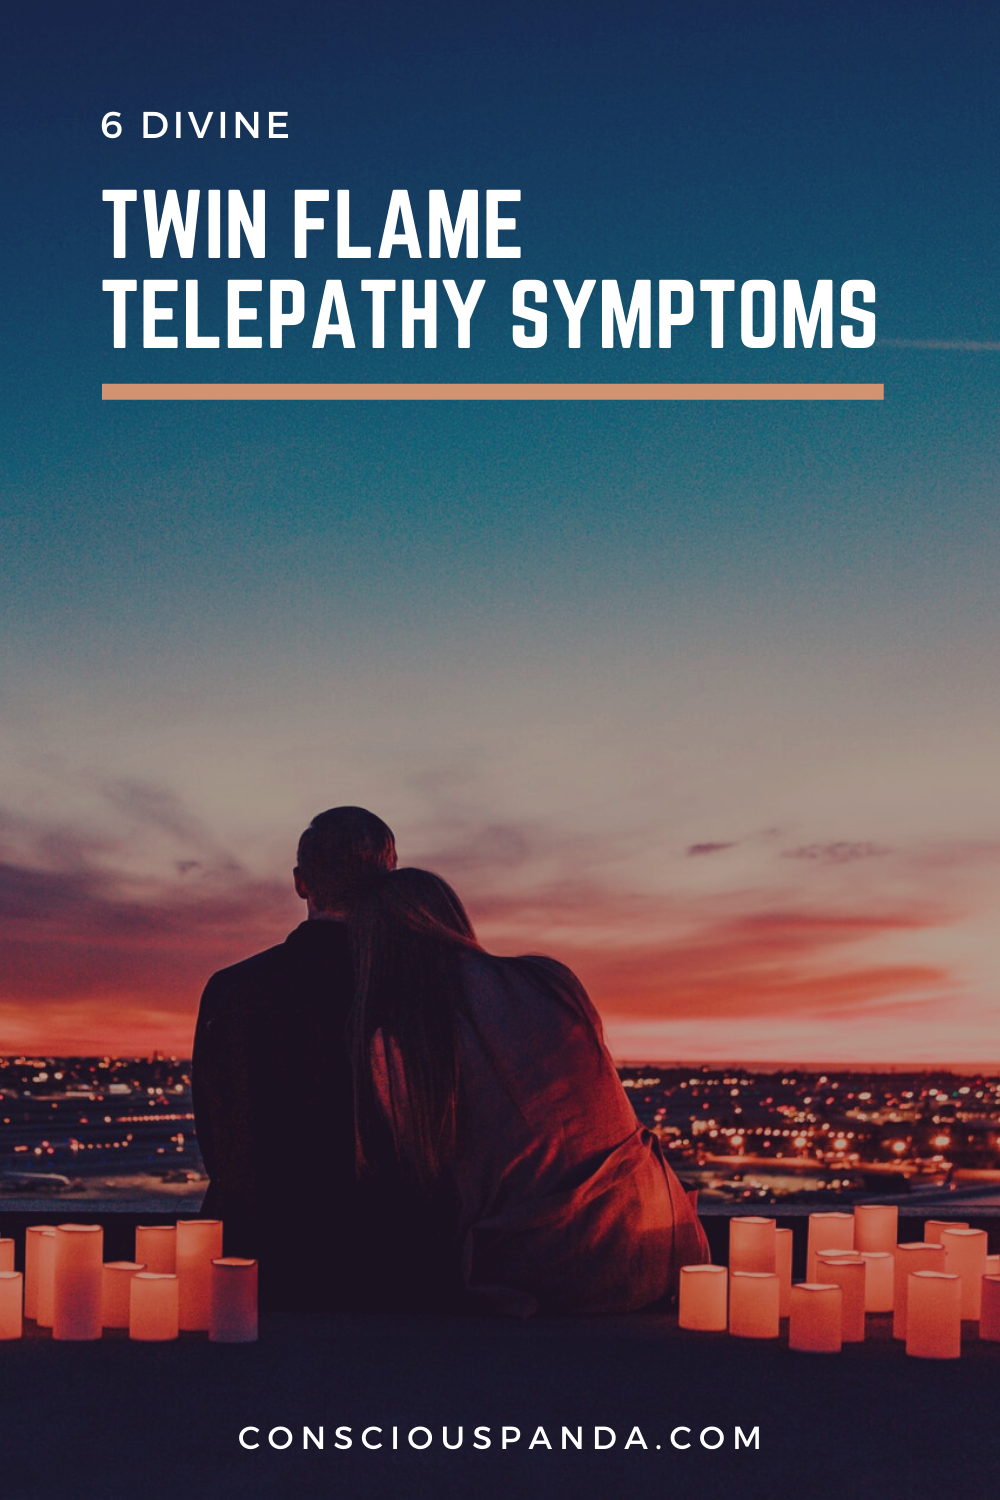 6 Divine Twin Flame Telepathy Symptoms